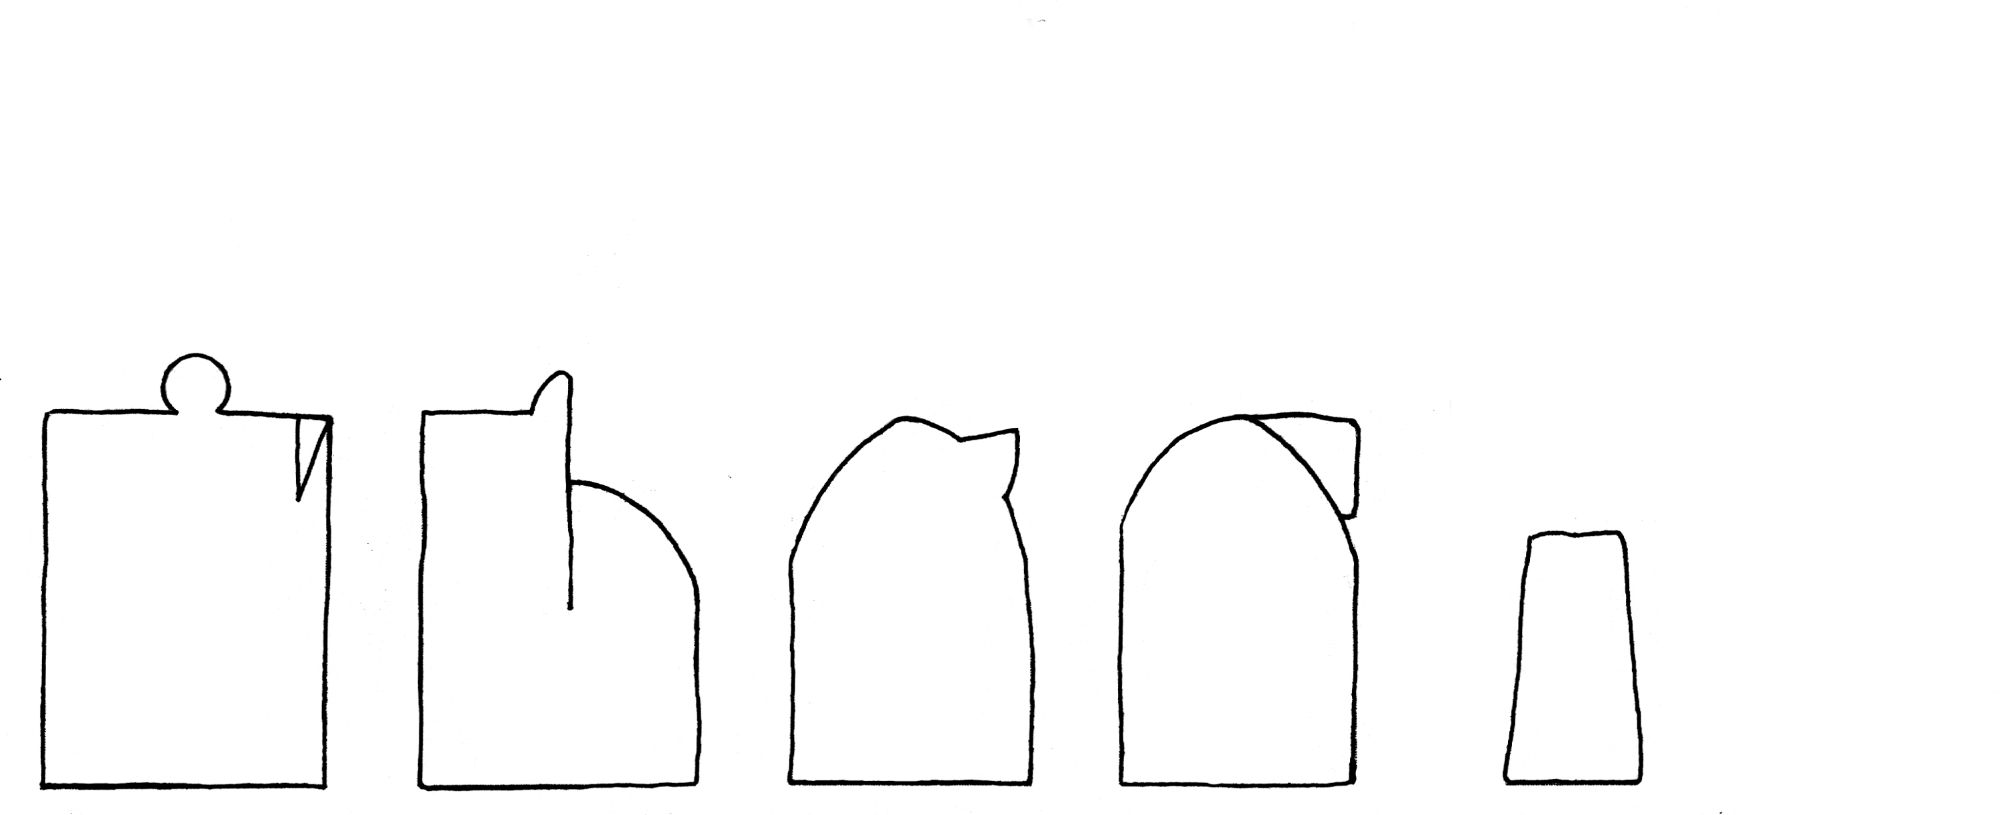 Early medieval chess set - interpretive diagram, viewed from the side